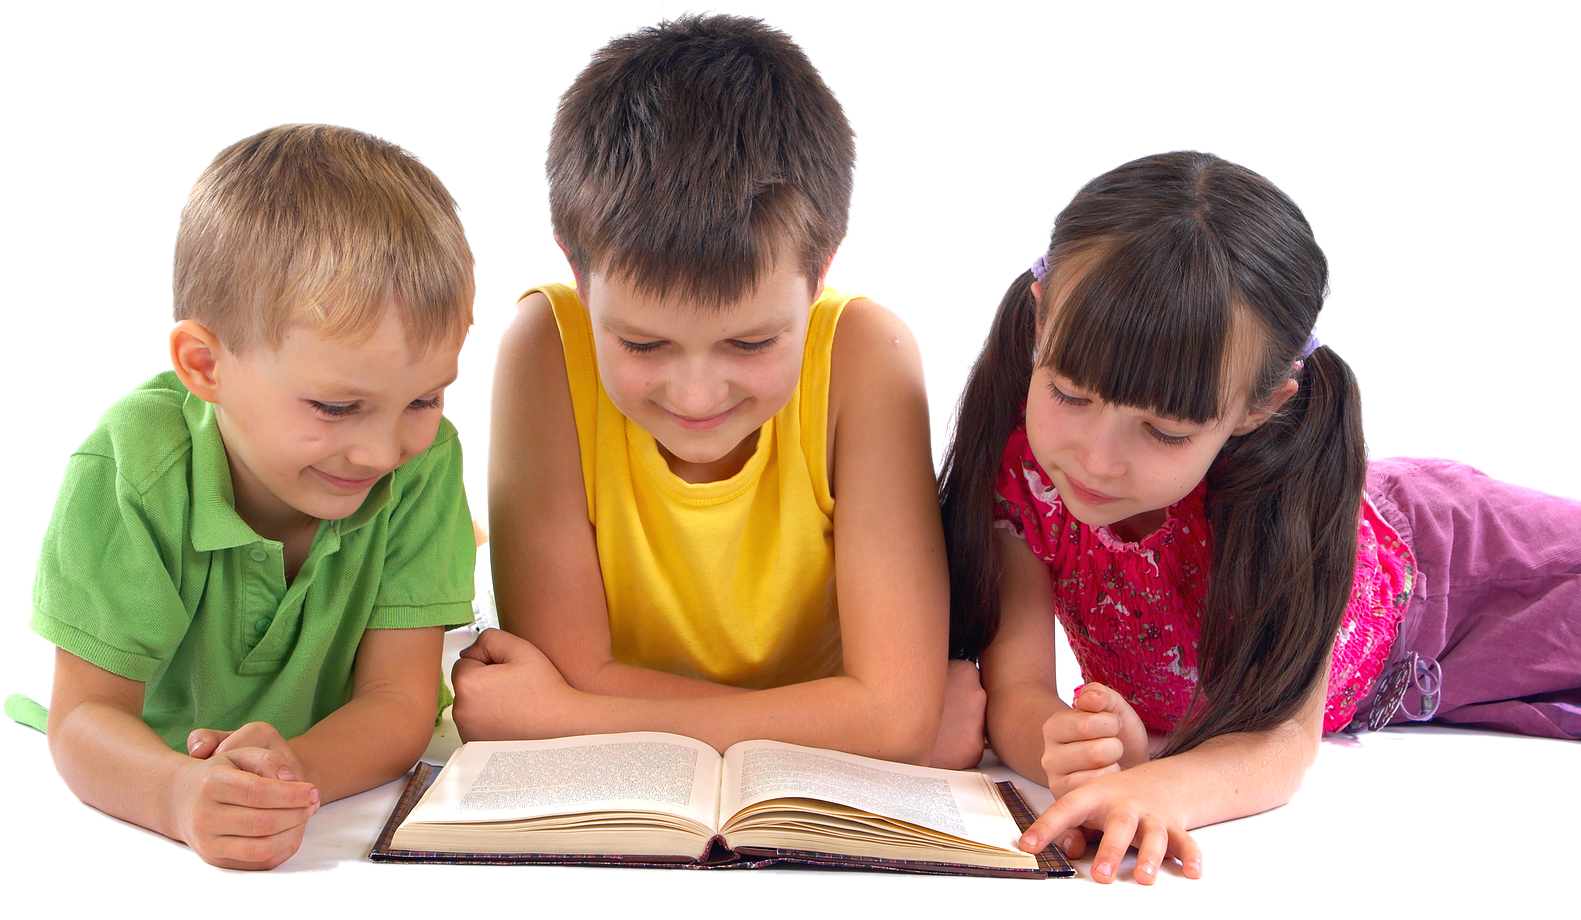 Transparent two kids reading clipart - Kids Reading Png - Children Reading A Book